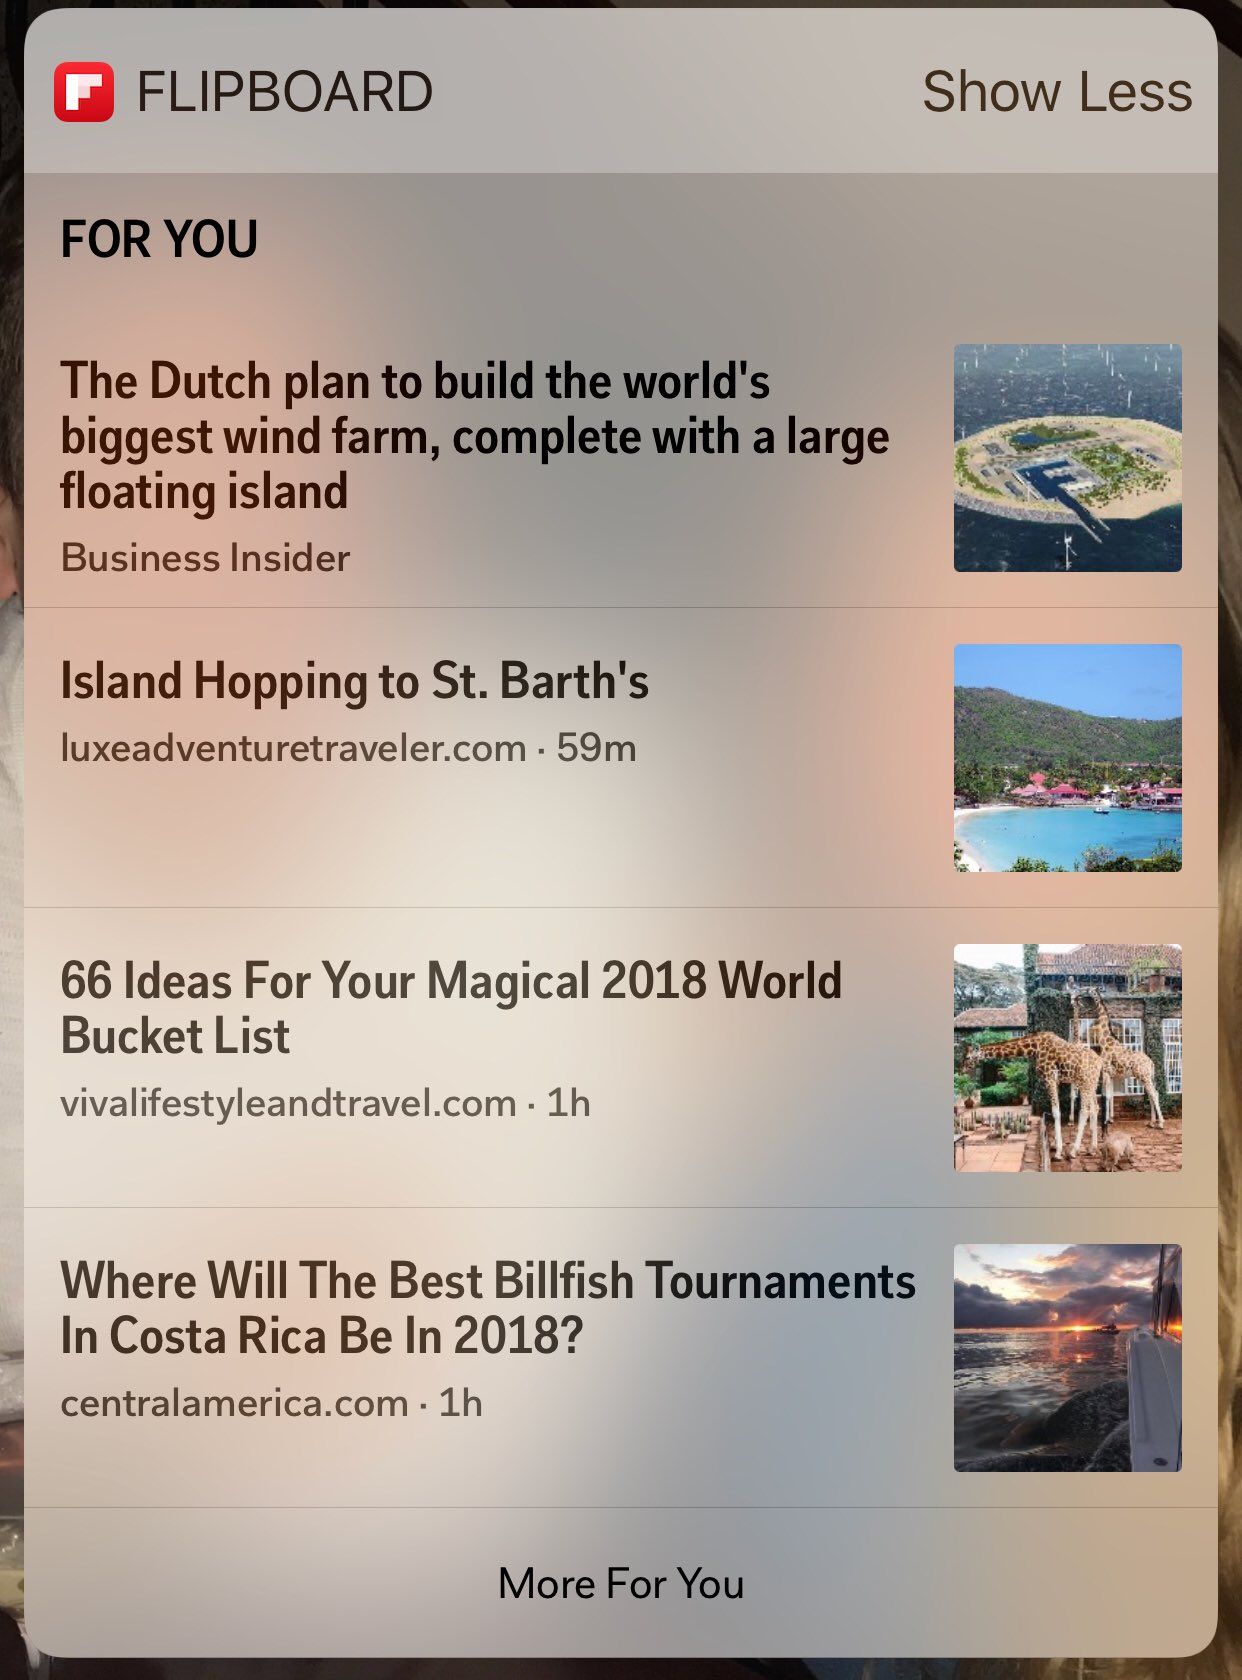 """#FlipTip: Add @Flipboard to your home screen to get the latest updates. Swipe right, scroll down to the """"edit"""" button and add the app. Select a story, it will open Flipboard. Happy reading! https://t.co/4nIA6rwZbb"""